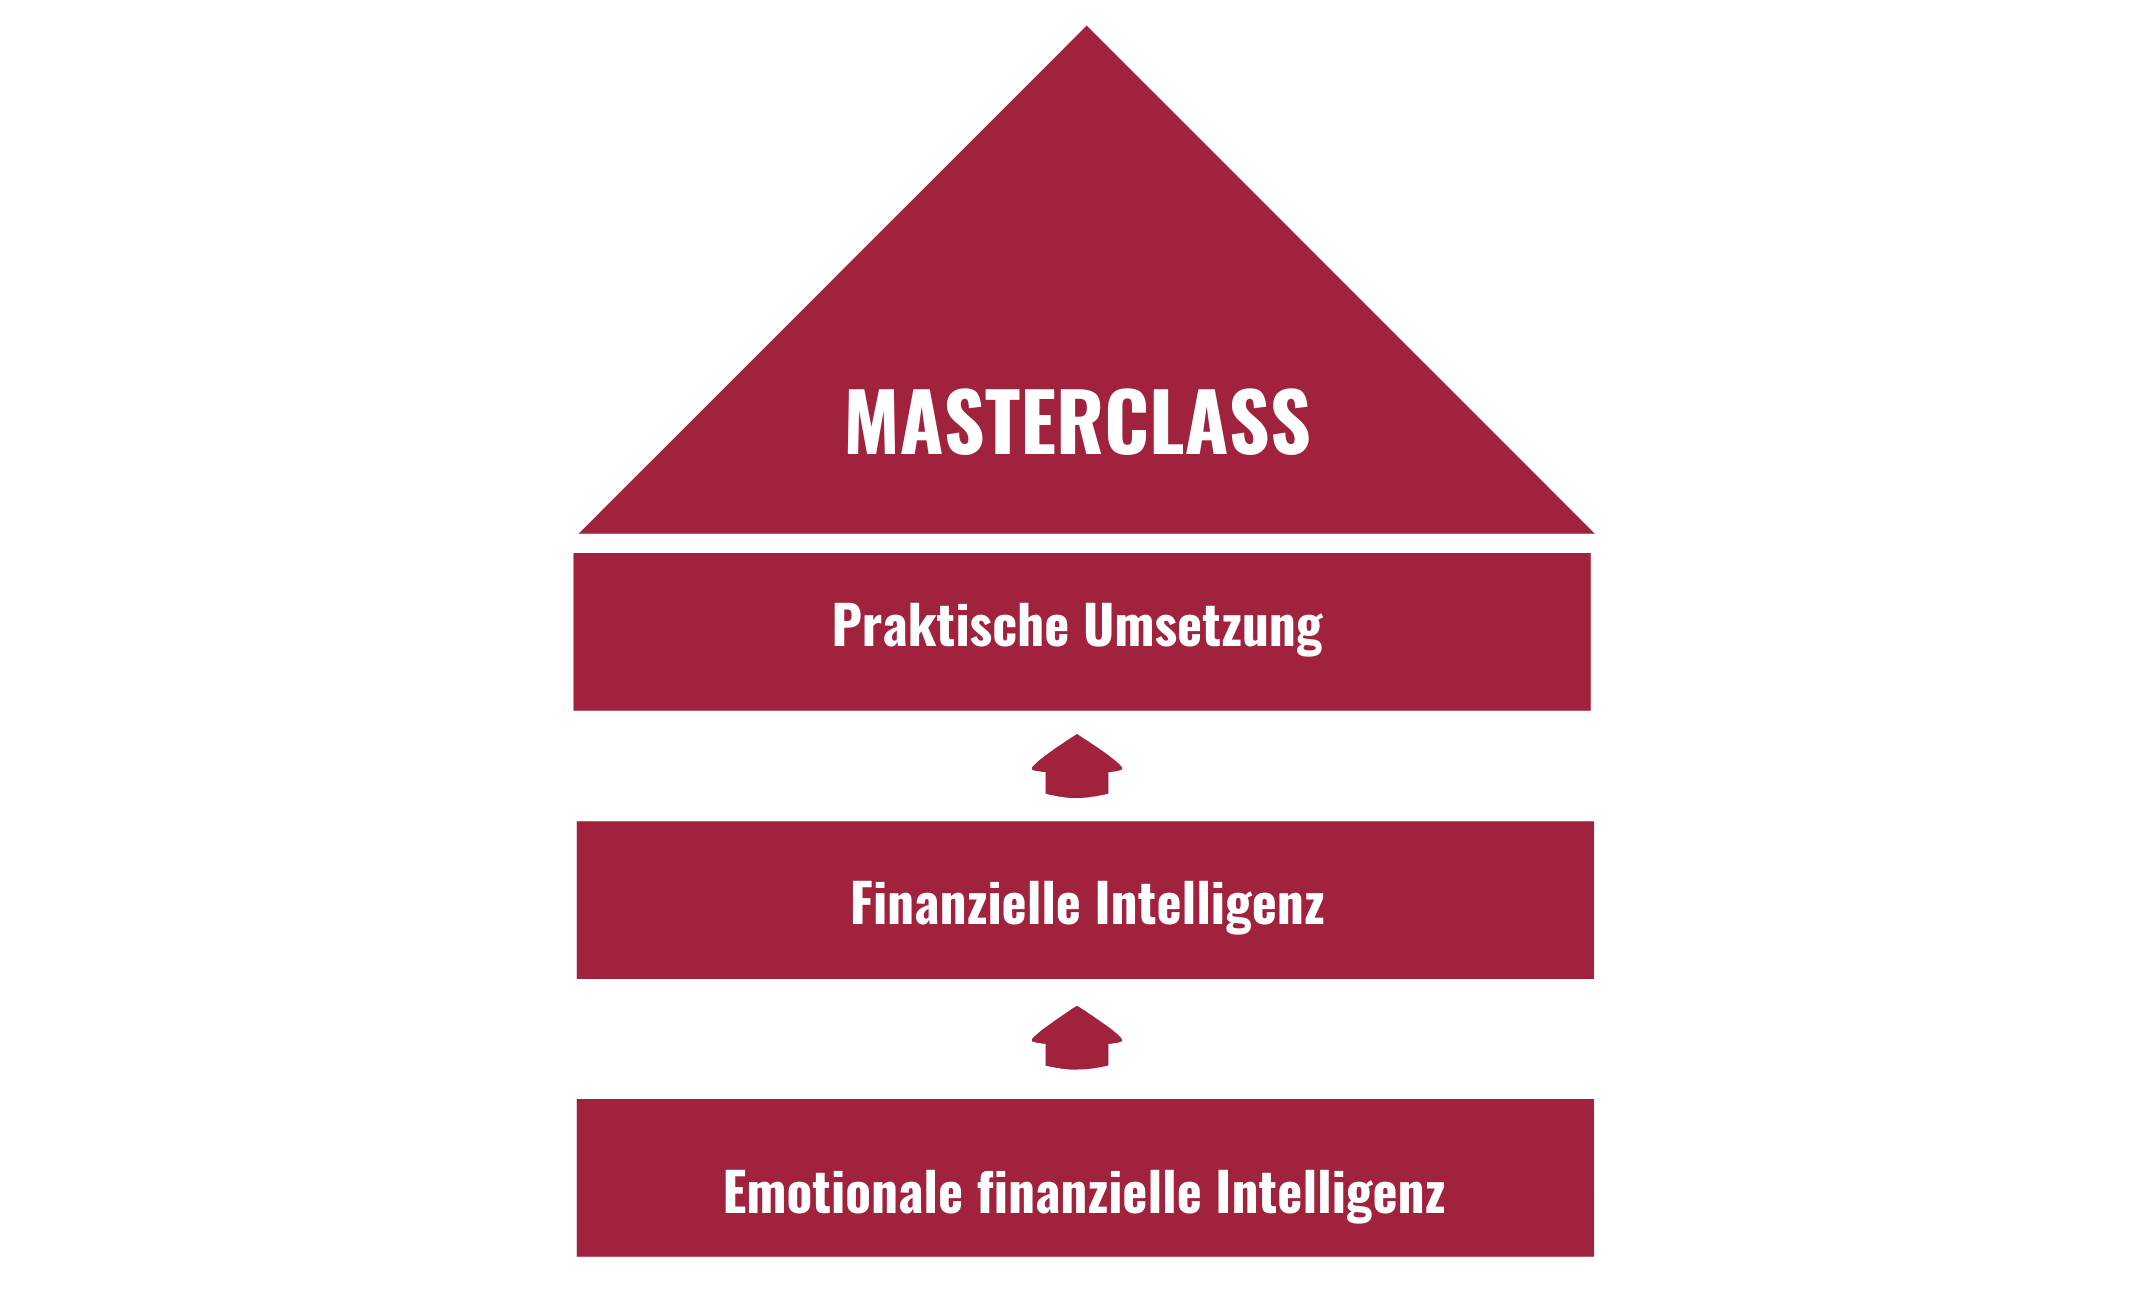 Masterclass Emotionale finanzielle Intelligenz